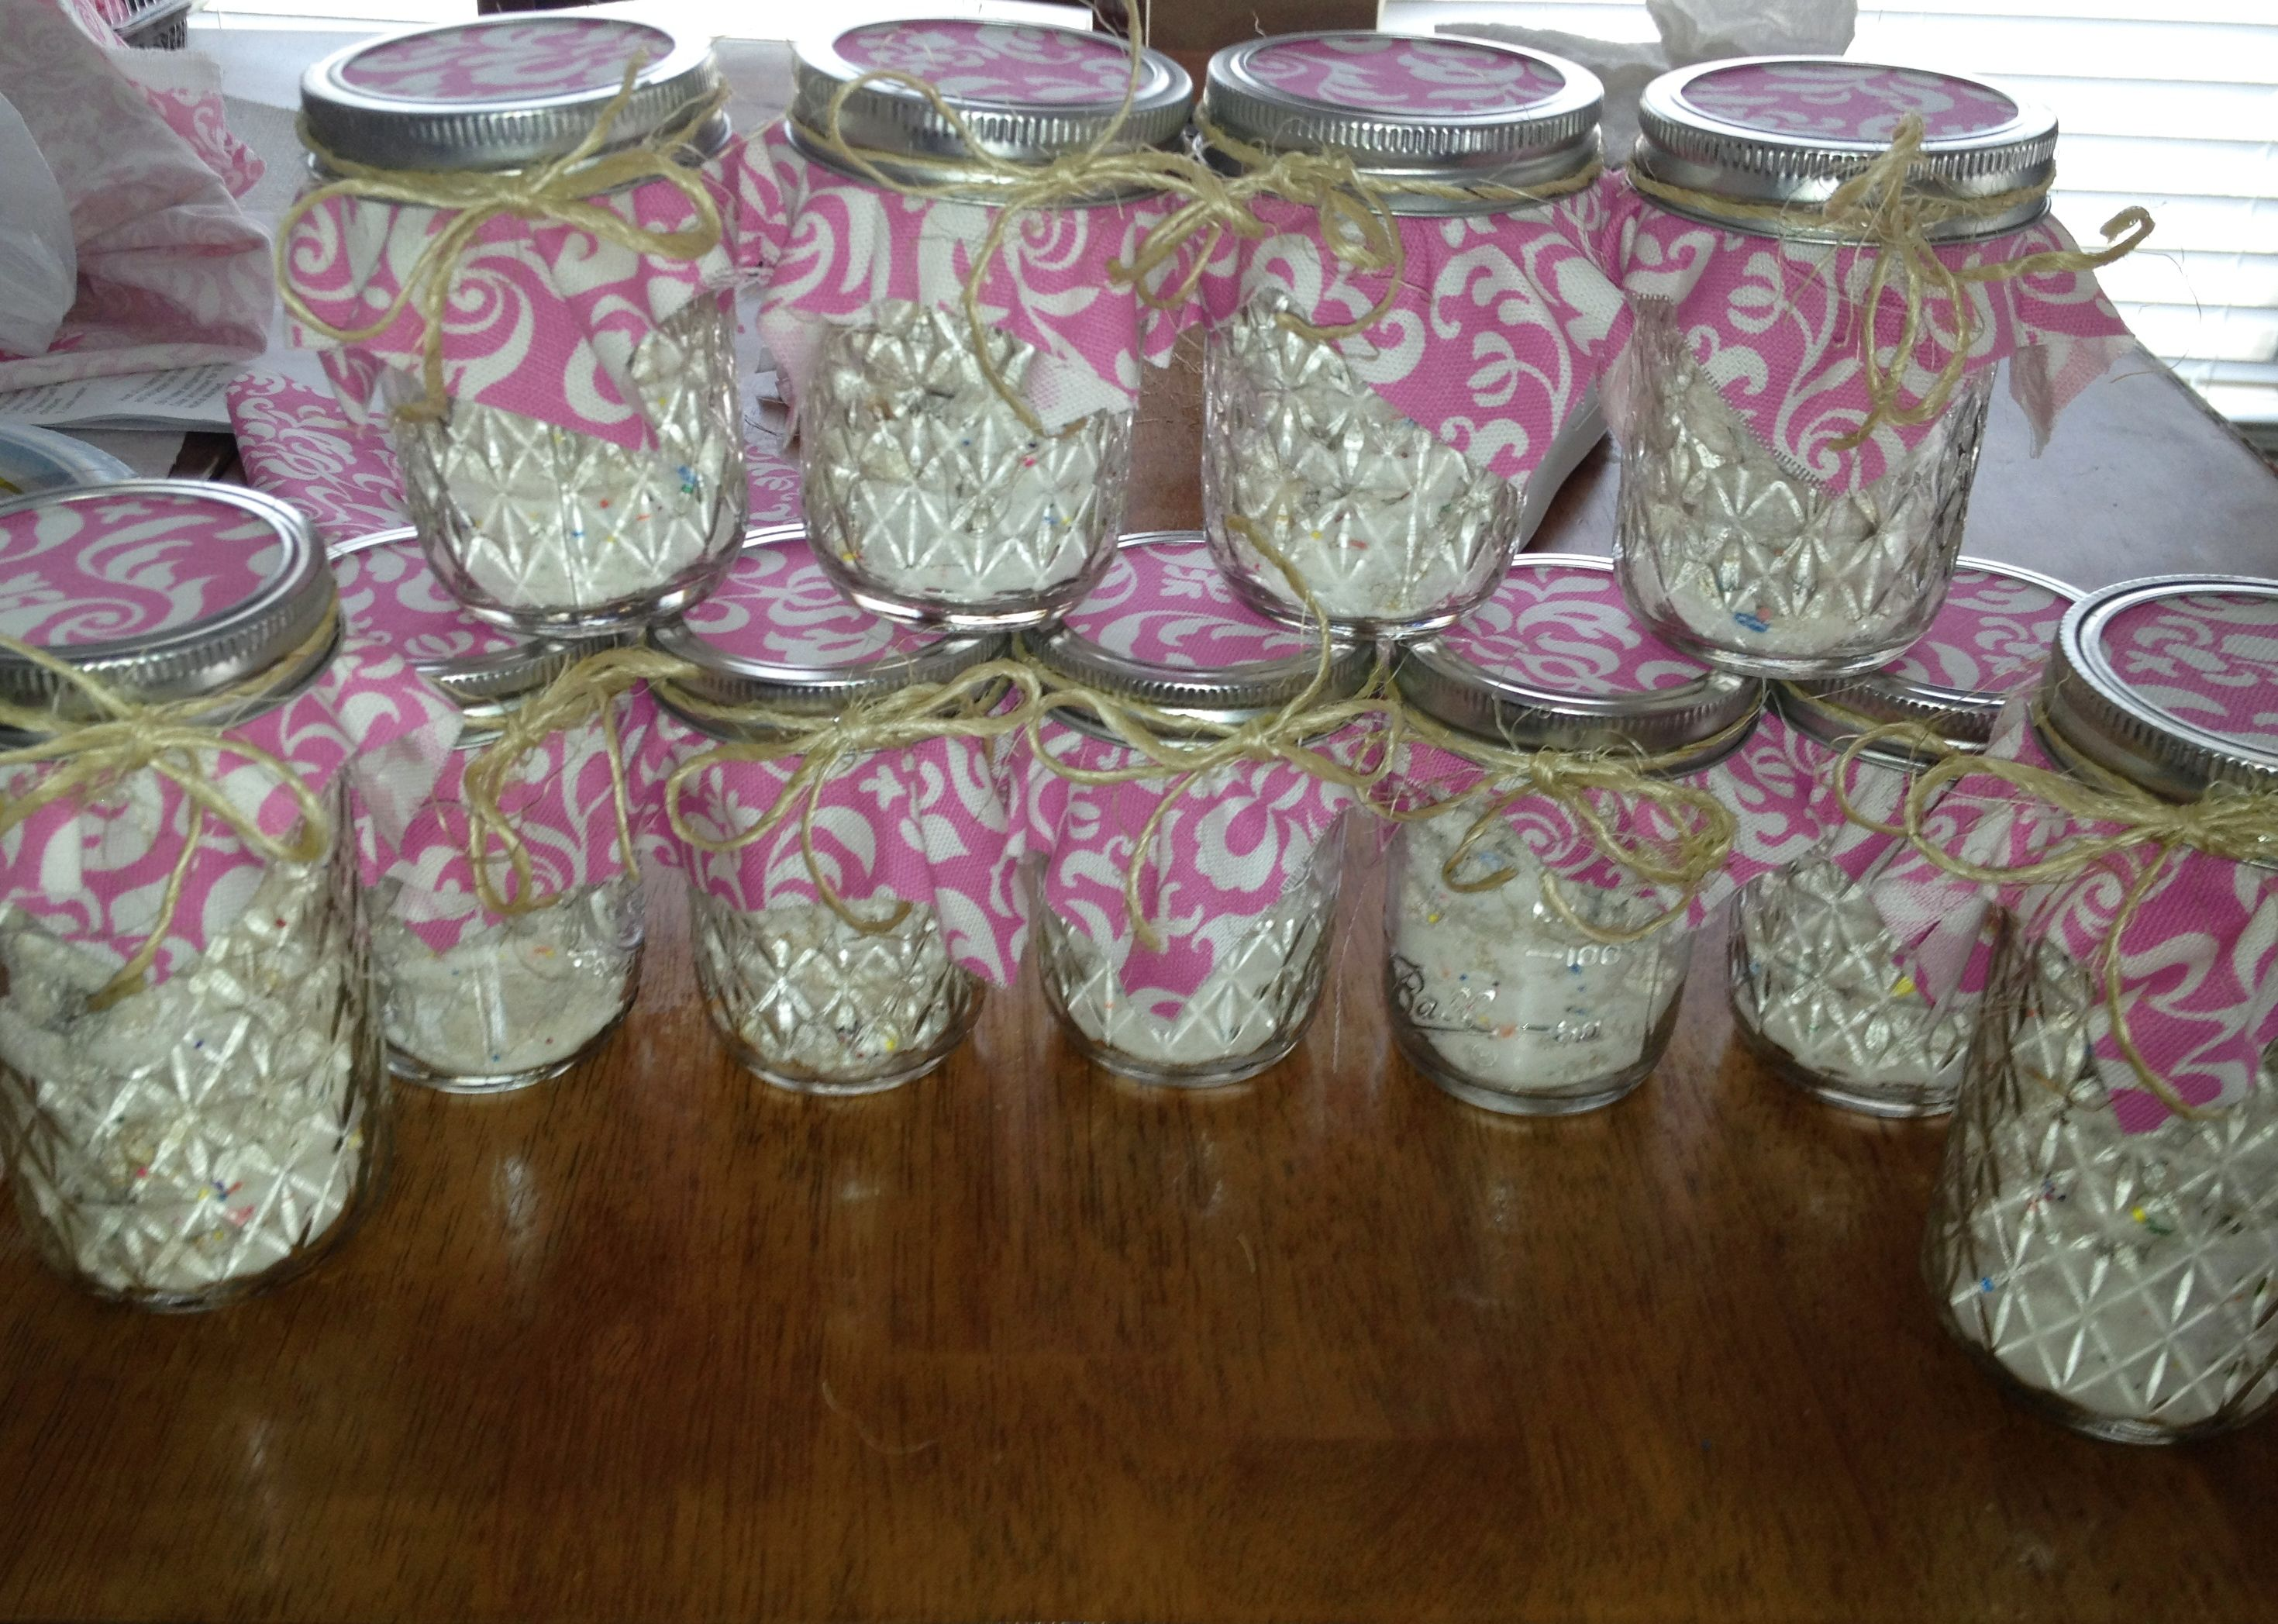 Fun fetti puppy chow party favors Fill a mason jar with your